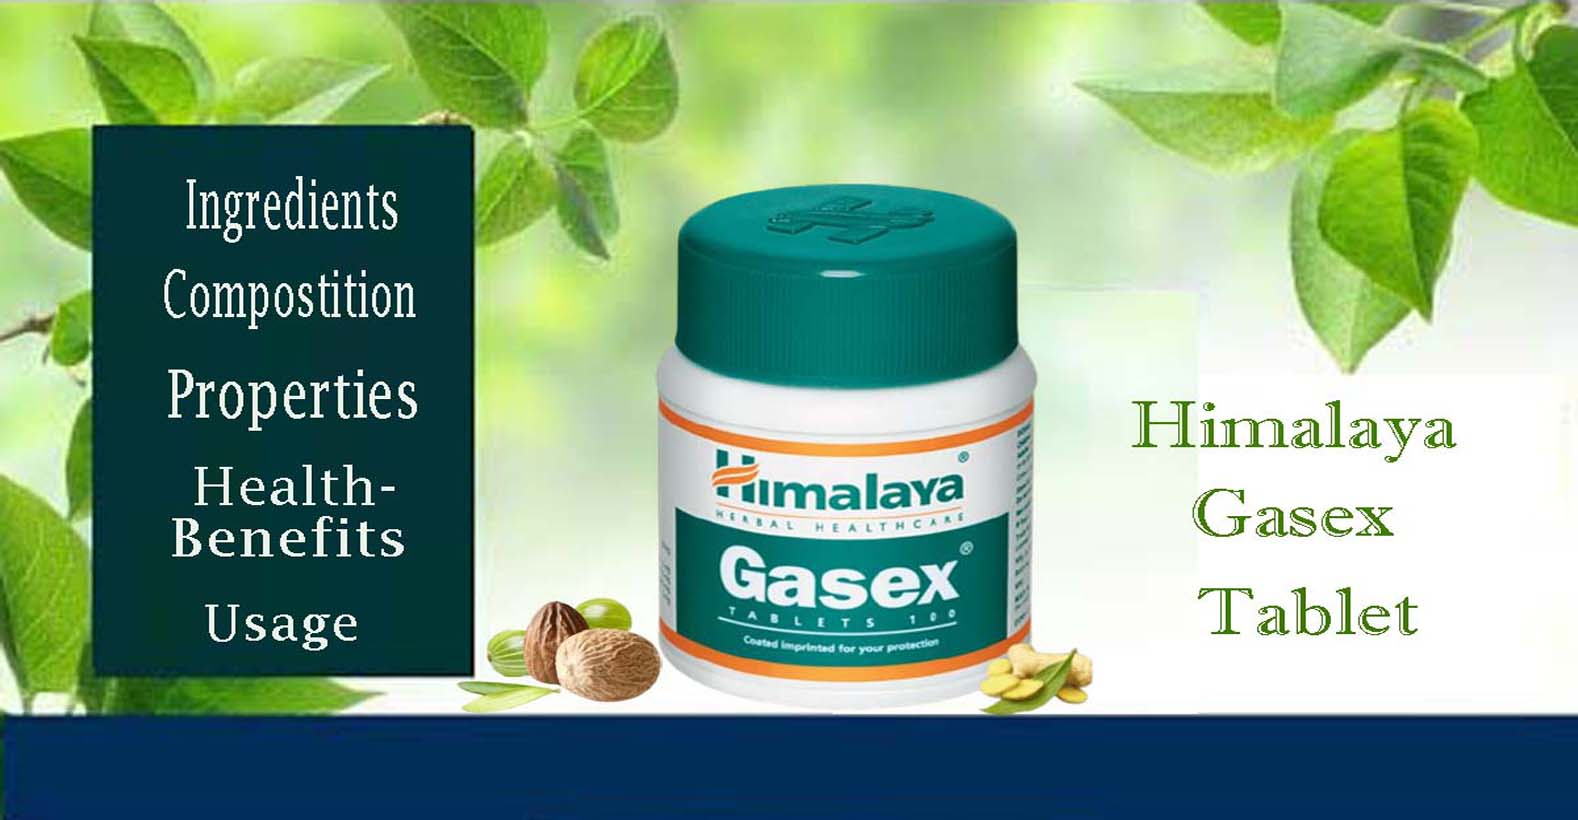 Himalaya Gasex Tablets - Ingredients, Composition, Properties, Health Benefits, Usage